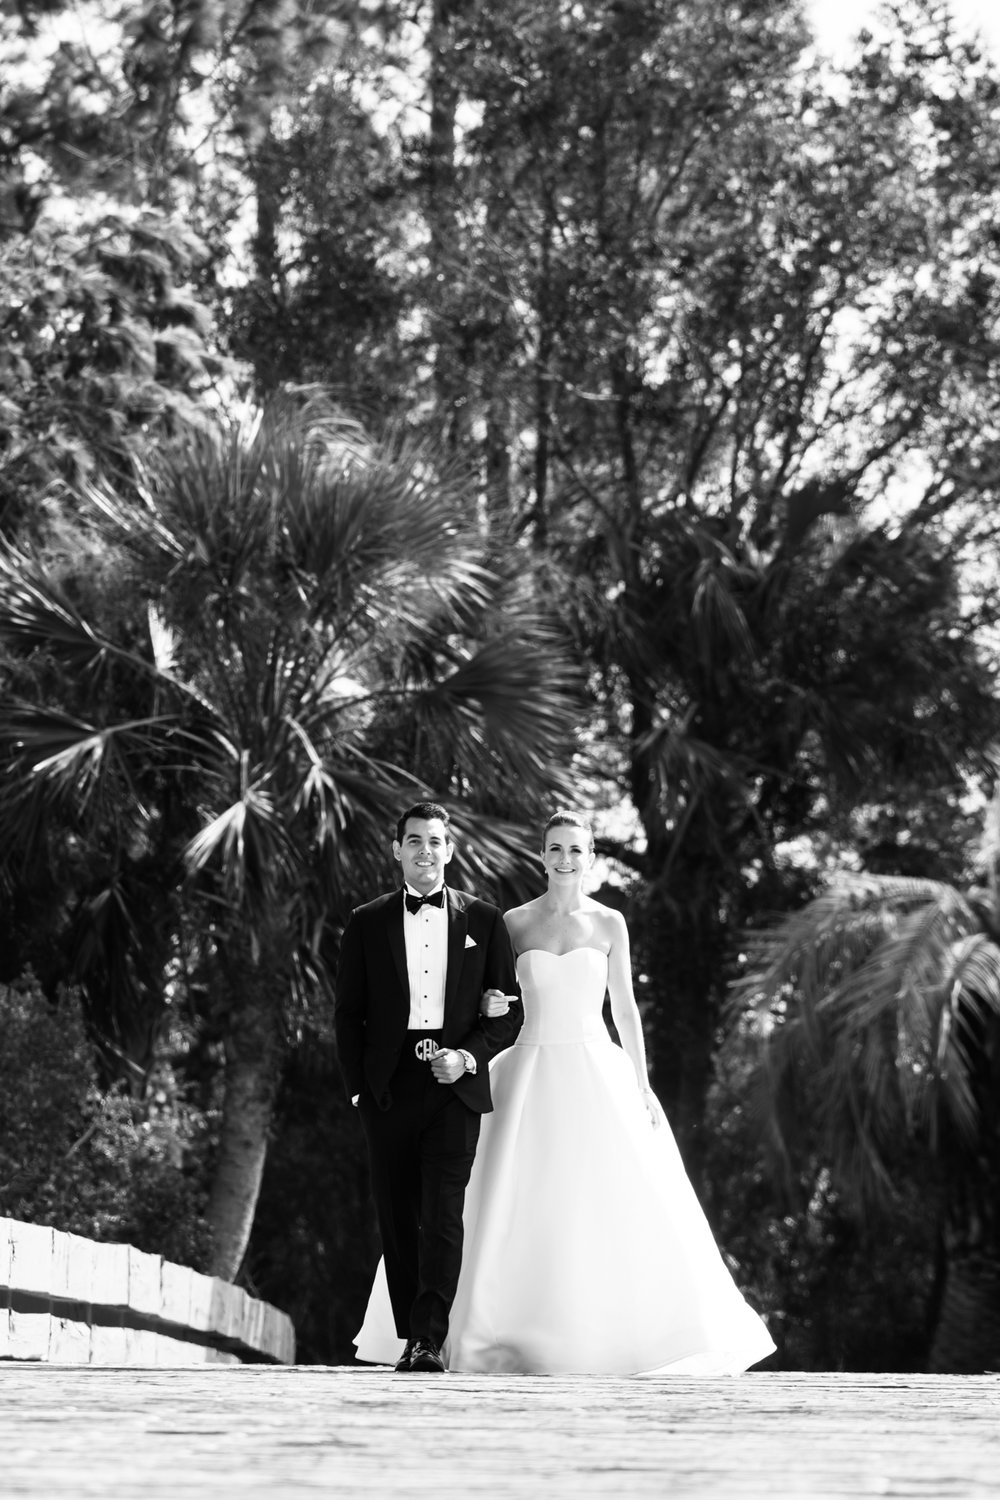 Black and white wedding photography in Kiawah, South Carolina